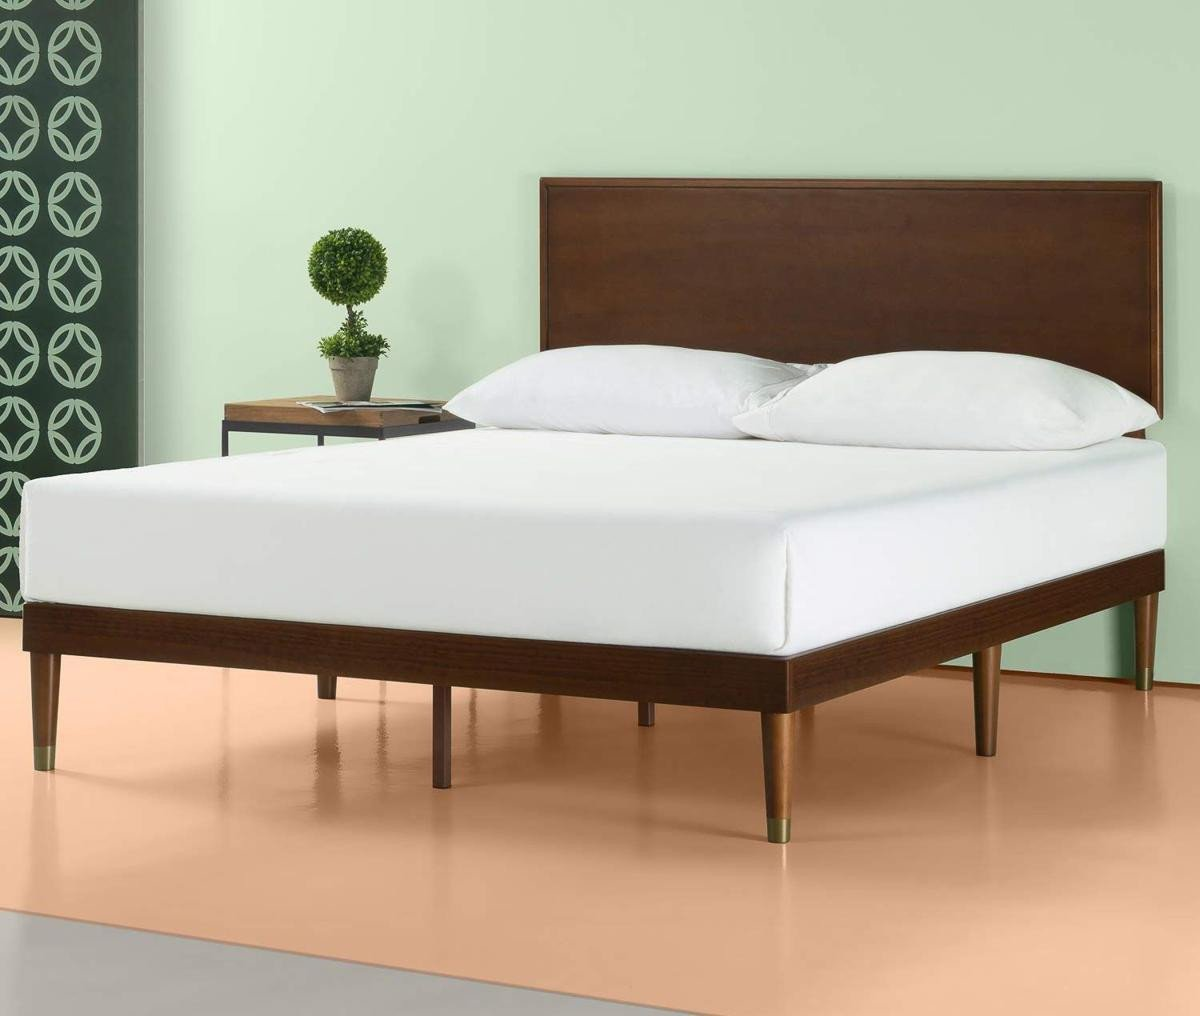 High End Bedroom Furniture Awesome Get A West Elm Look for Under $300 with This Mid Century Bed